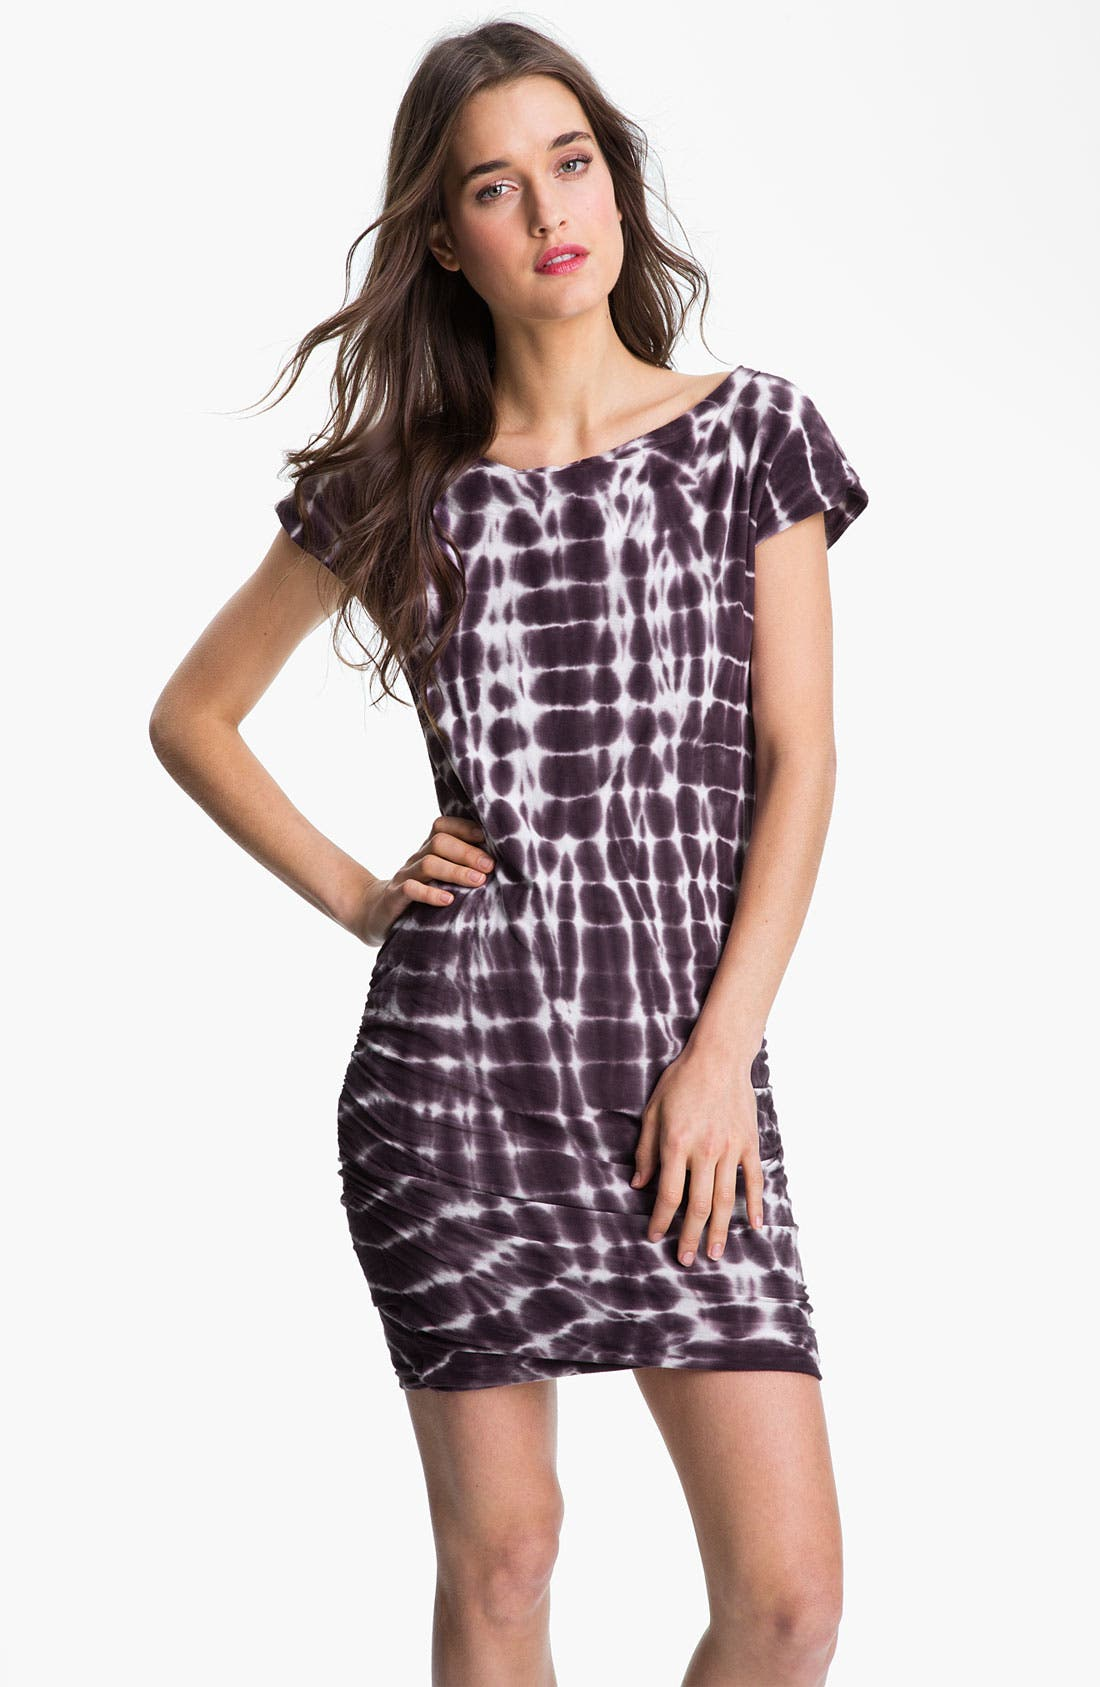 Alternate Image 1 Selected - James Perse Tie Dyed Boatneck Dress